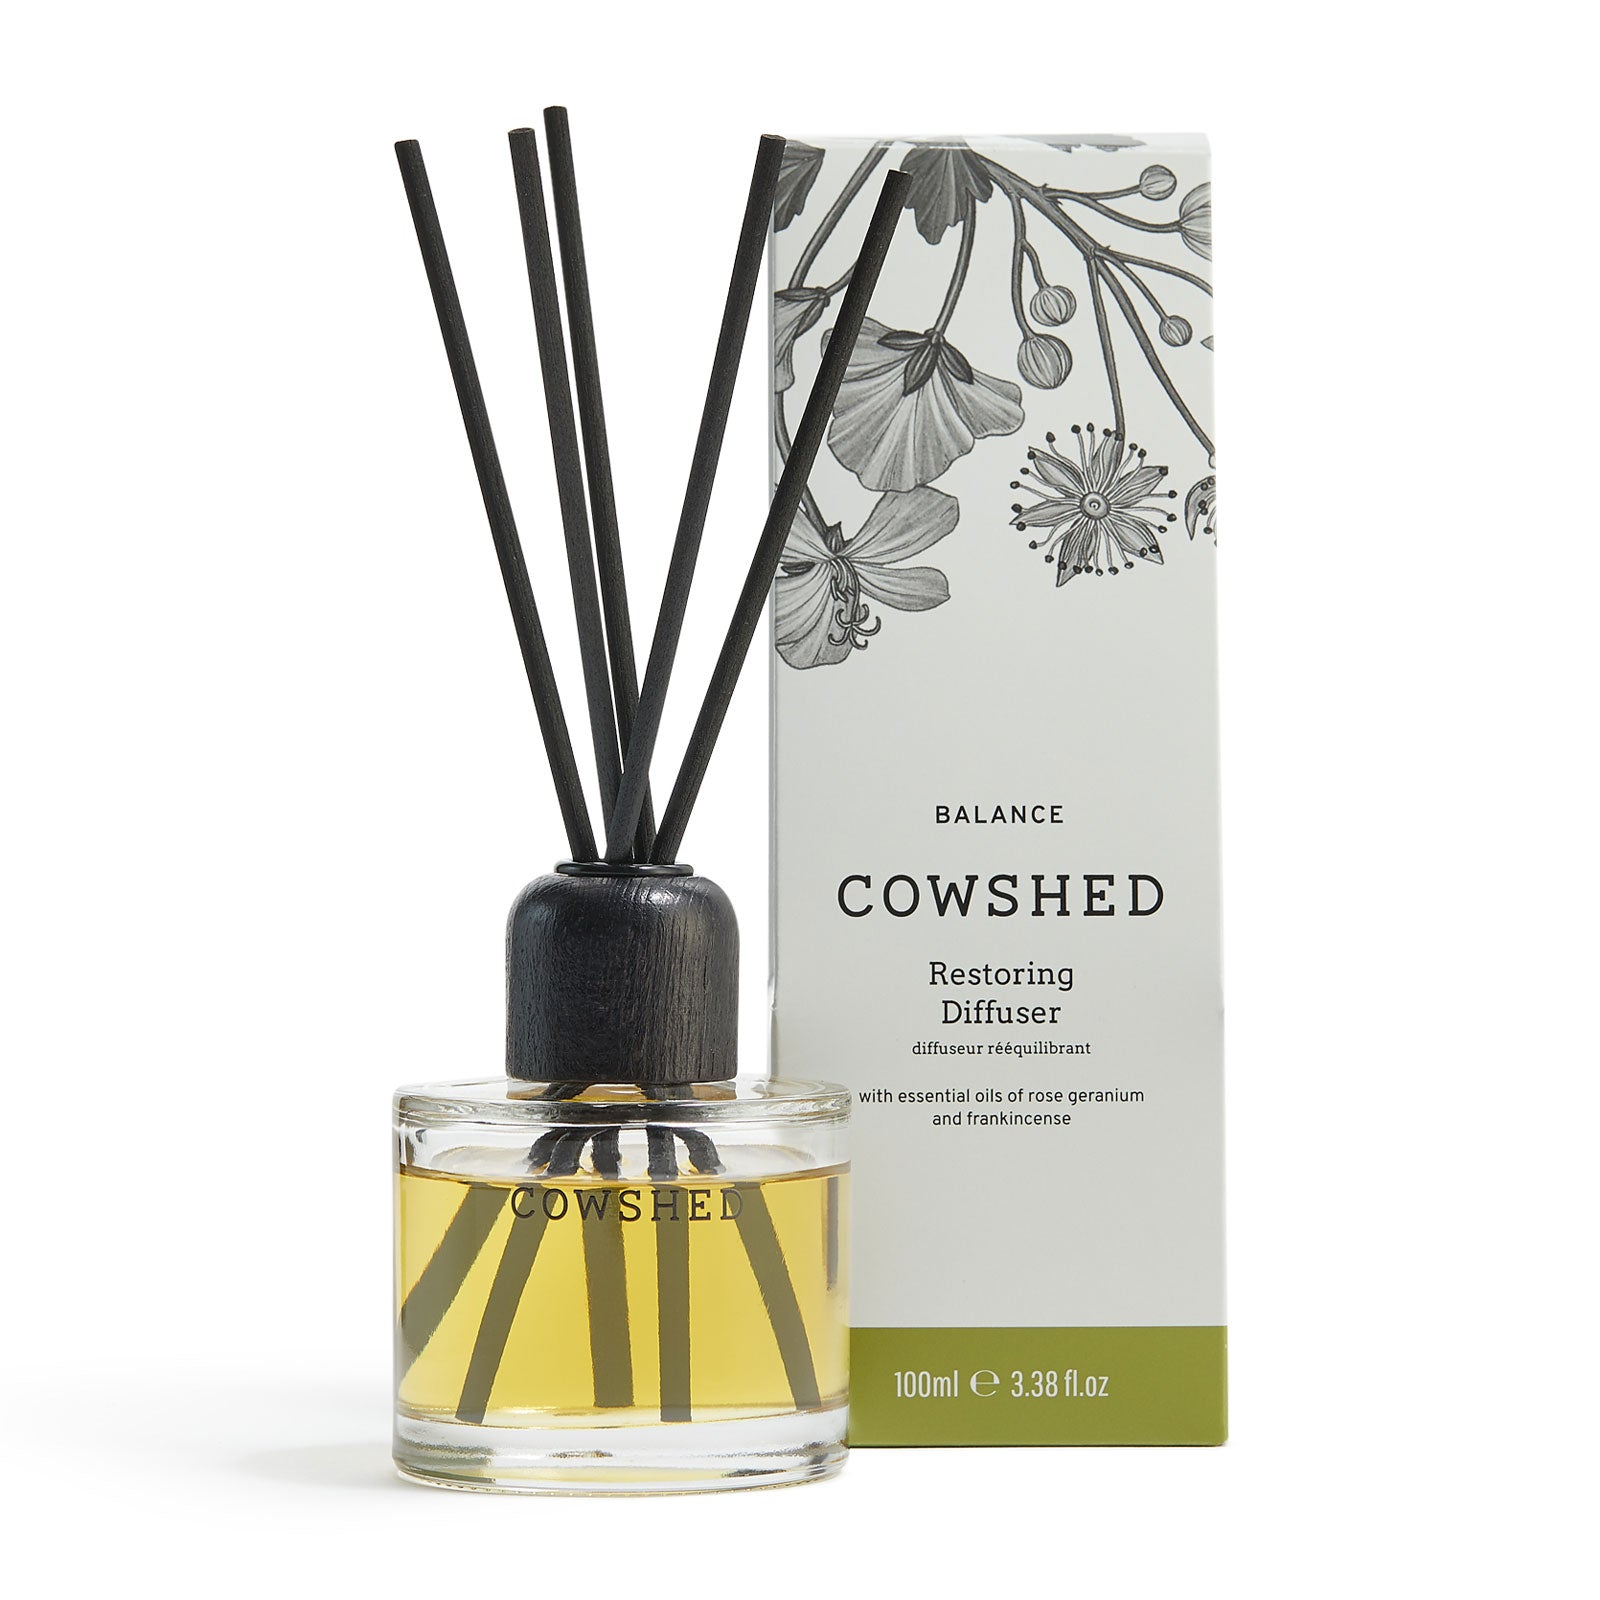 Cowshed Balance Restoring Diffuser 100ml